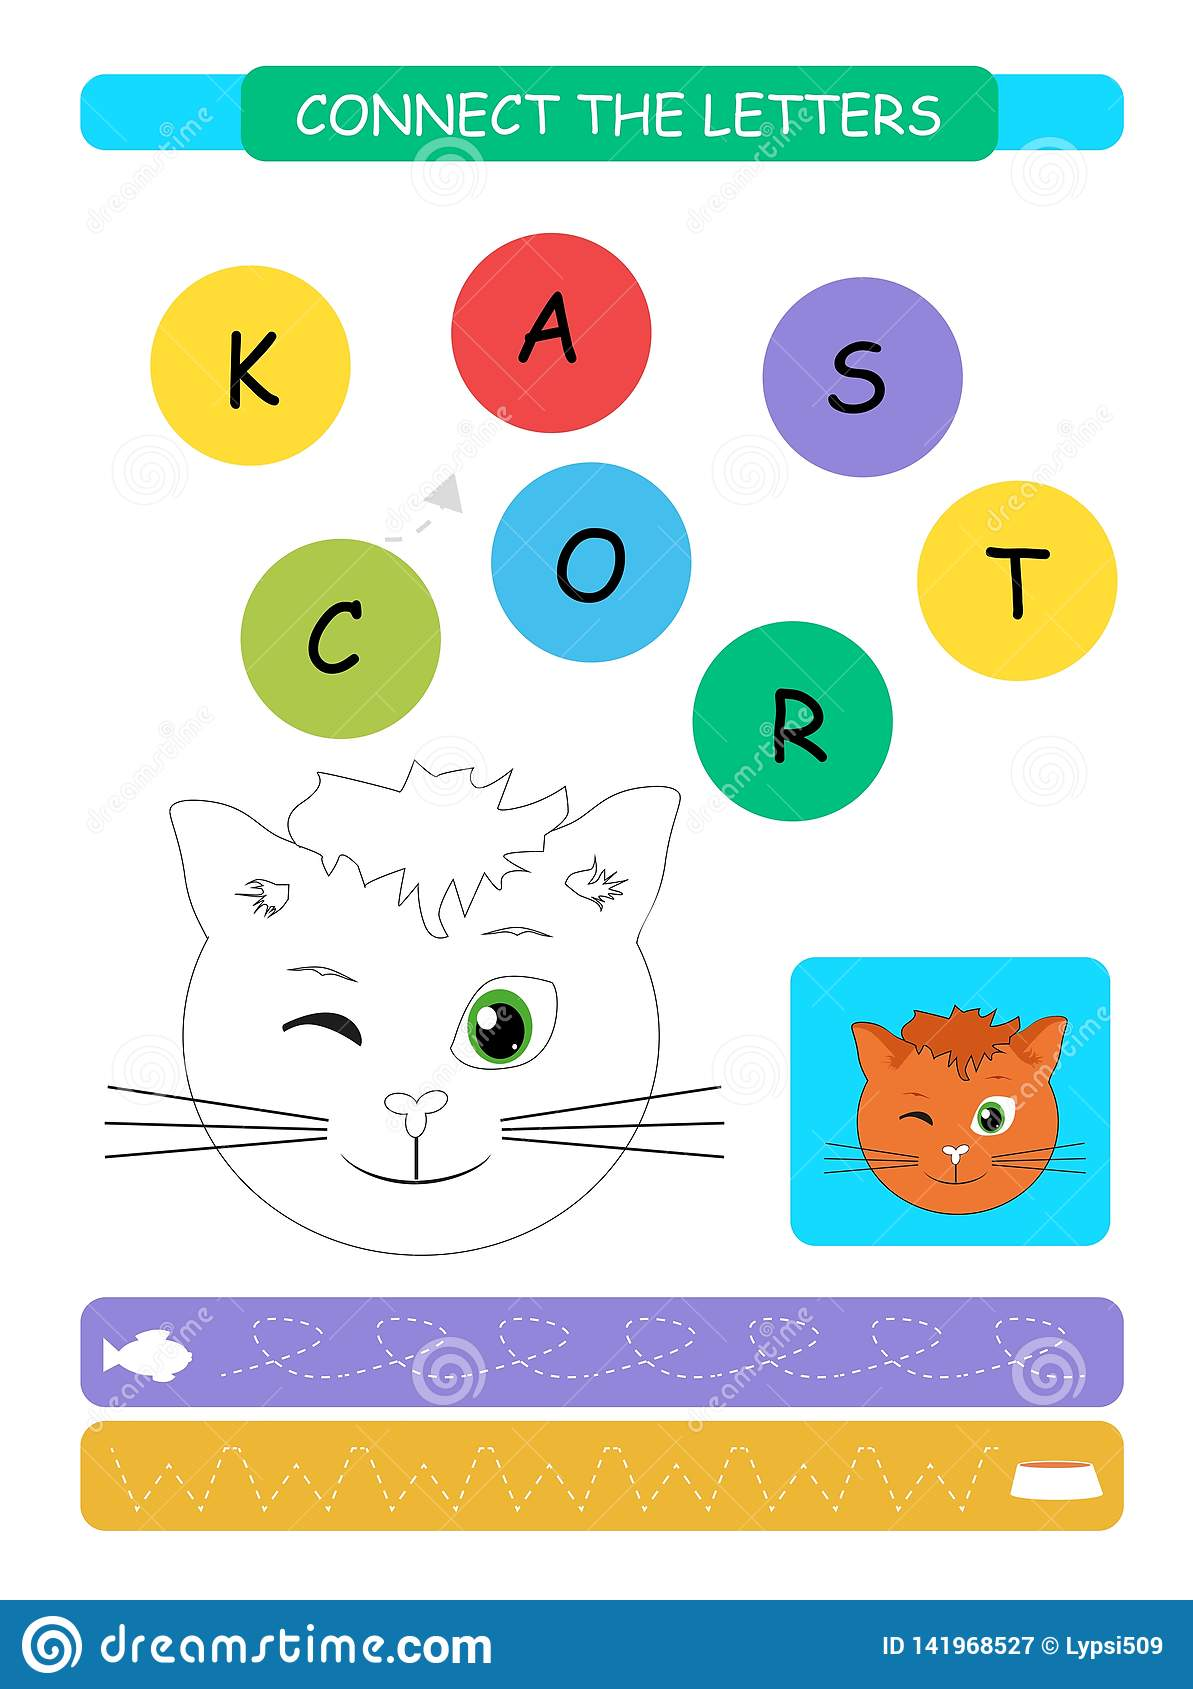 Connect The Letters Printable Worksheet For Preschool And